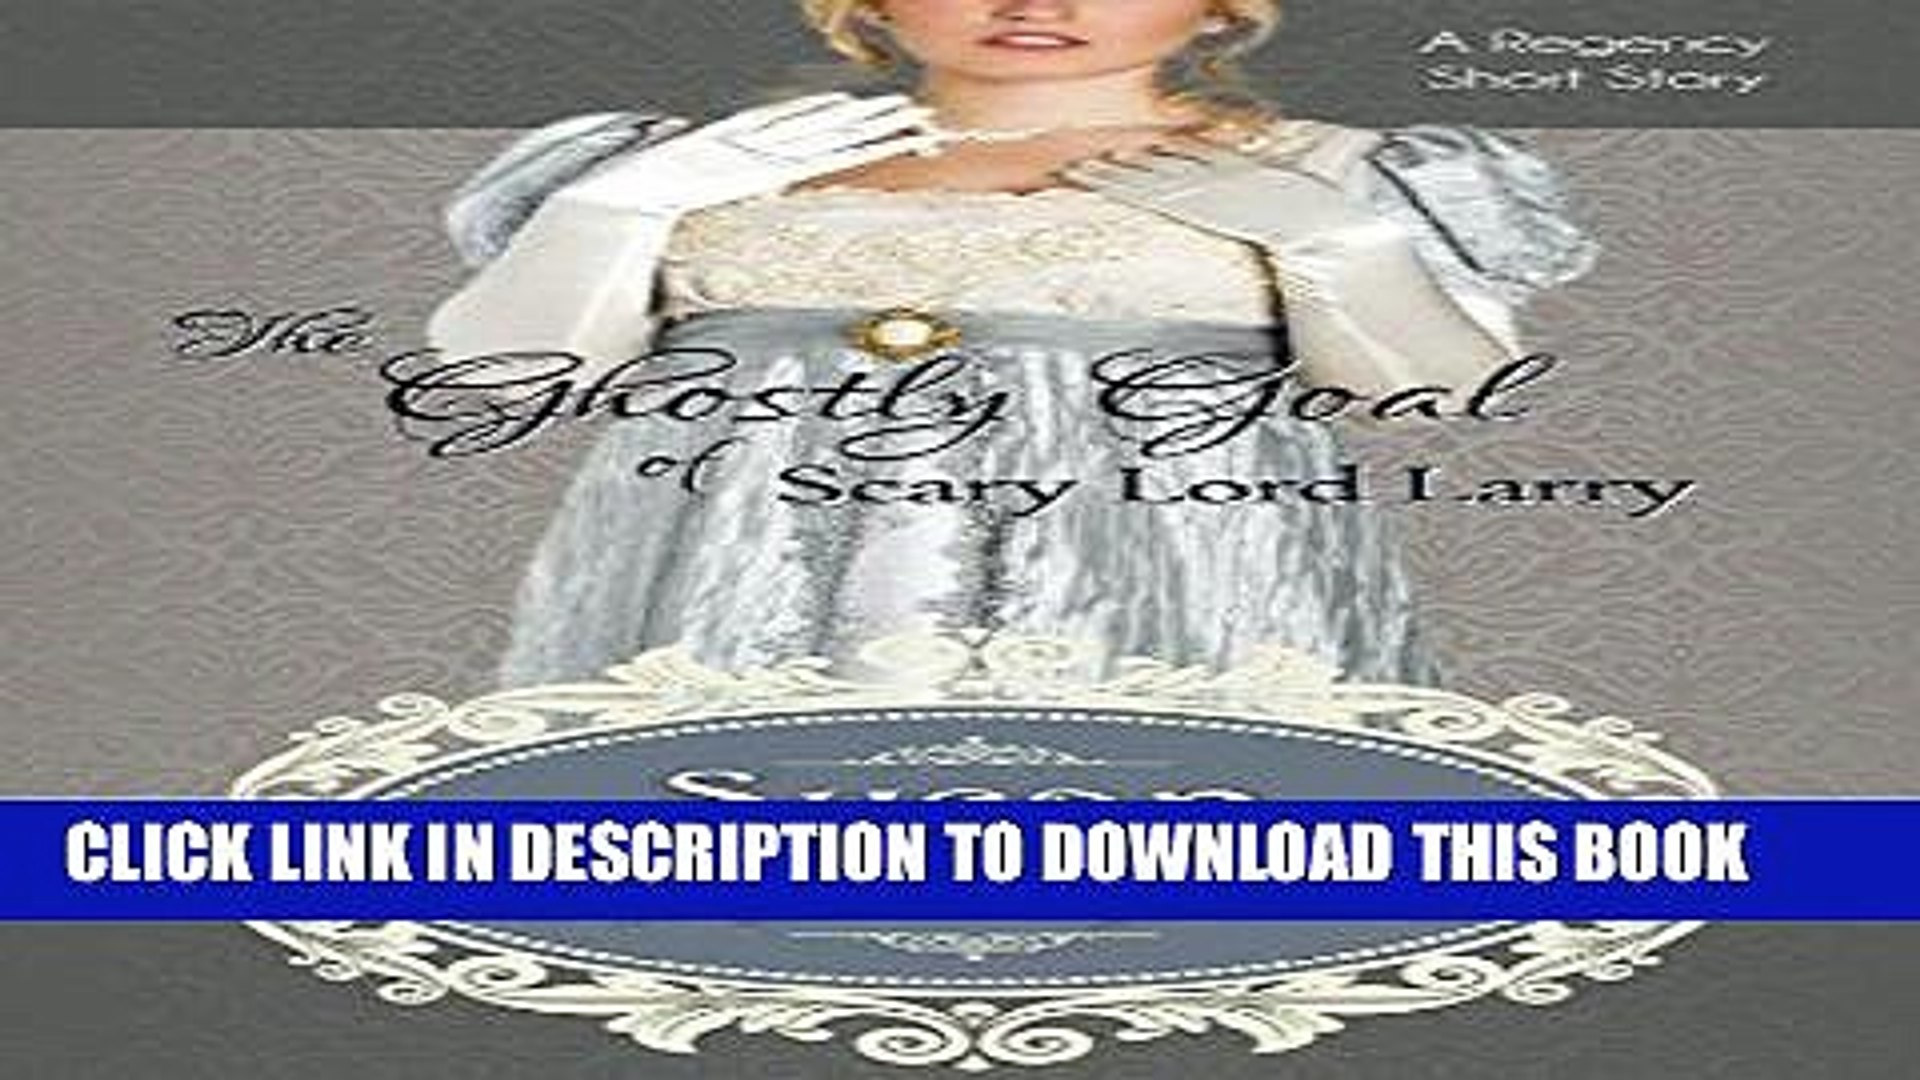 Best Seller The Ghostly Goal of Scary Lord Larry (Three Tempting Tales of Lord Larry Book 3) Free